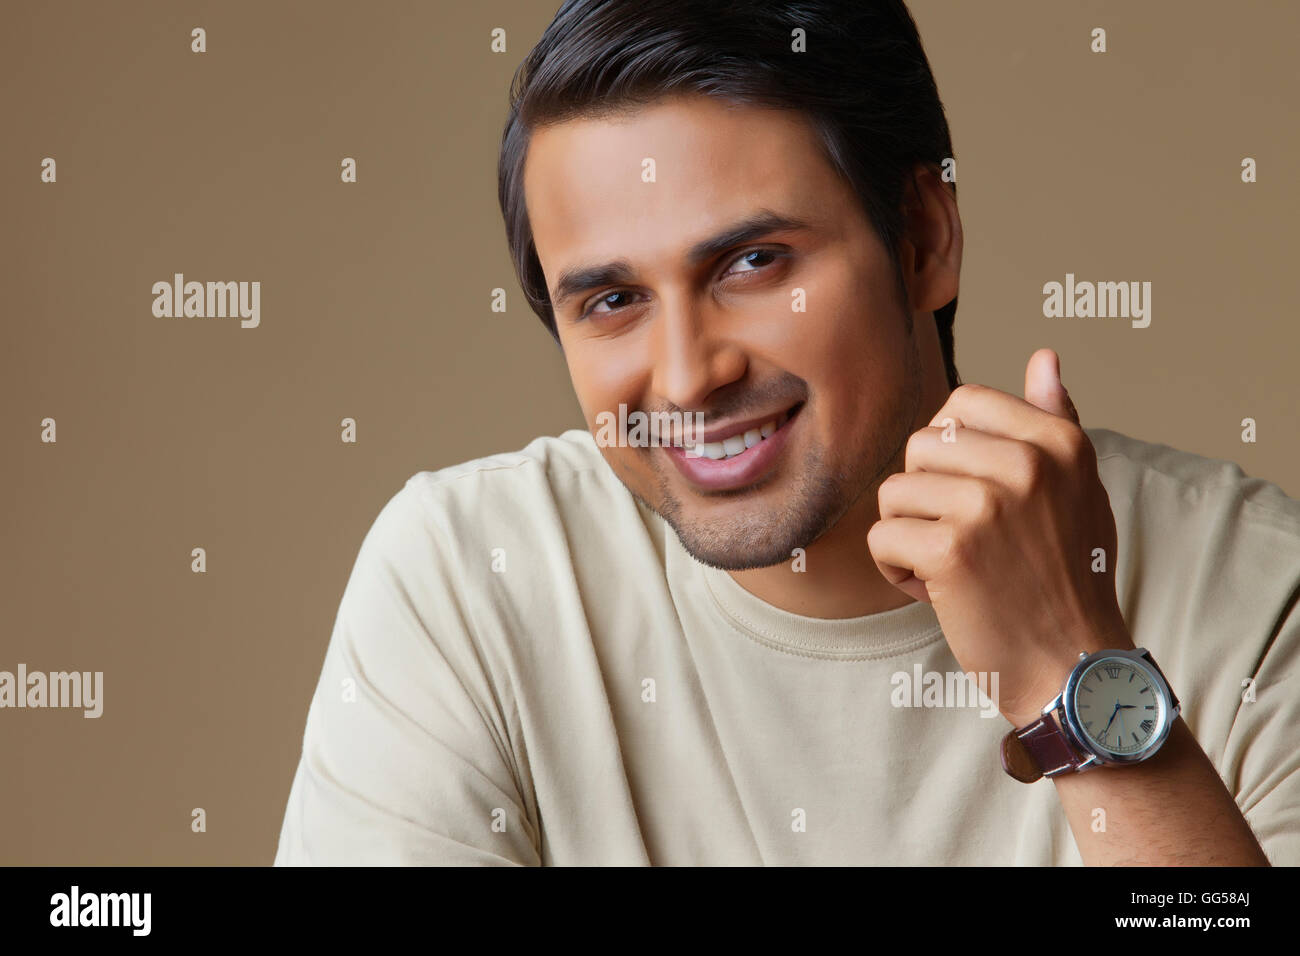 Portrait of Indian man smiling over colored background - Stock Image